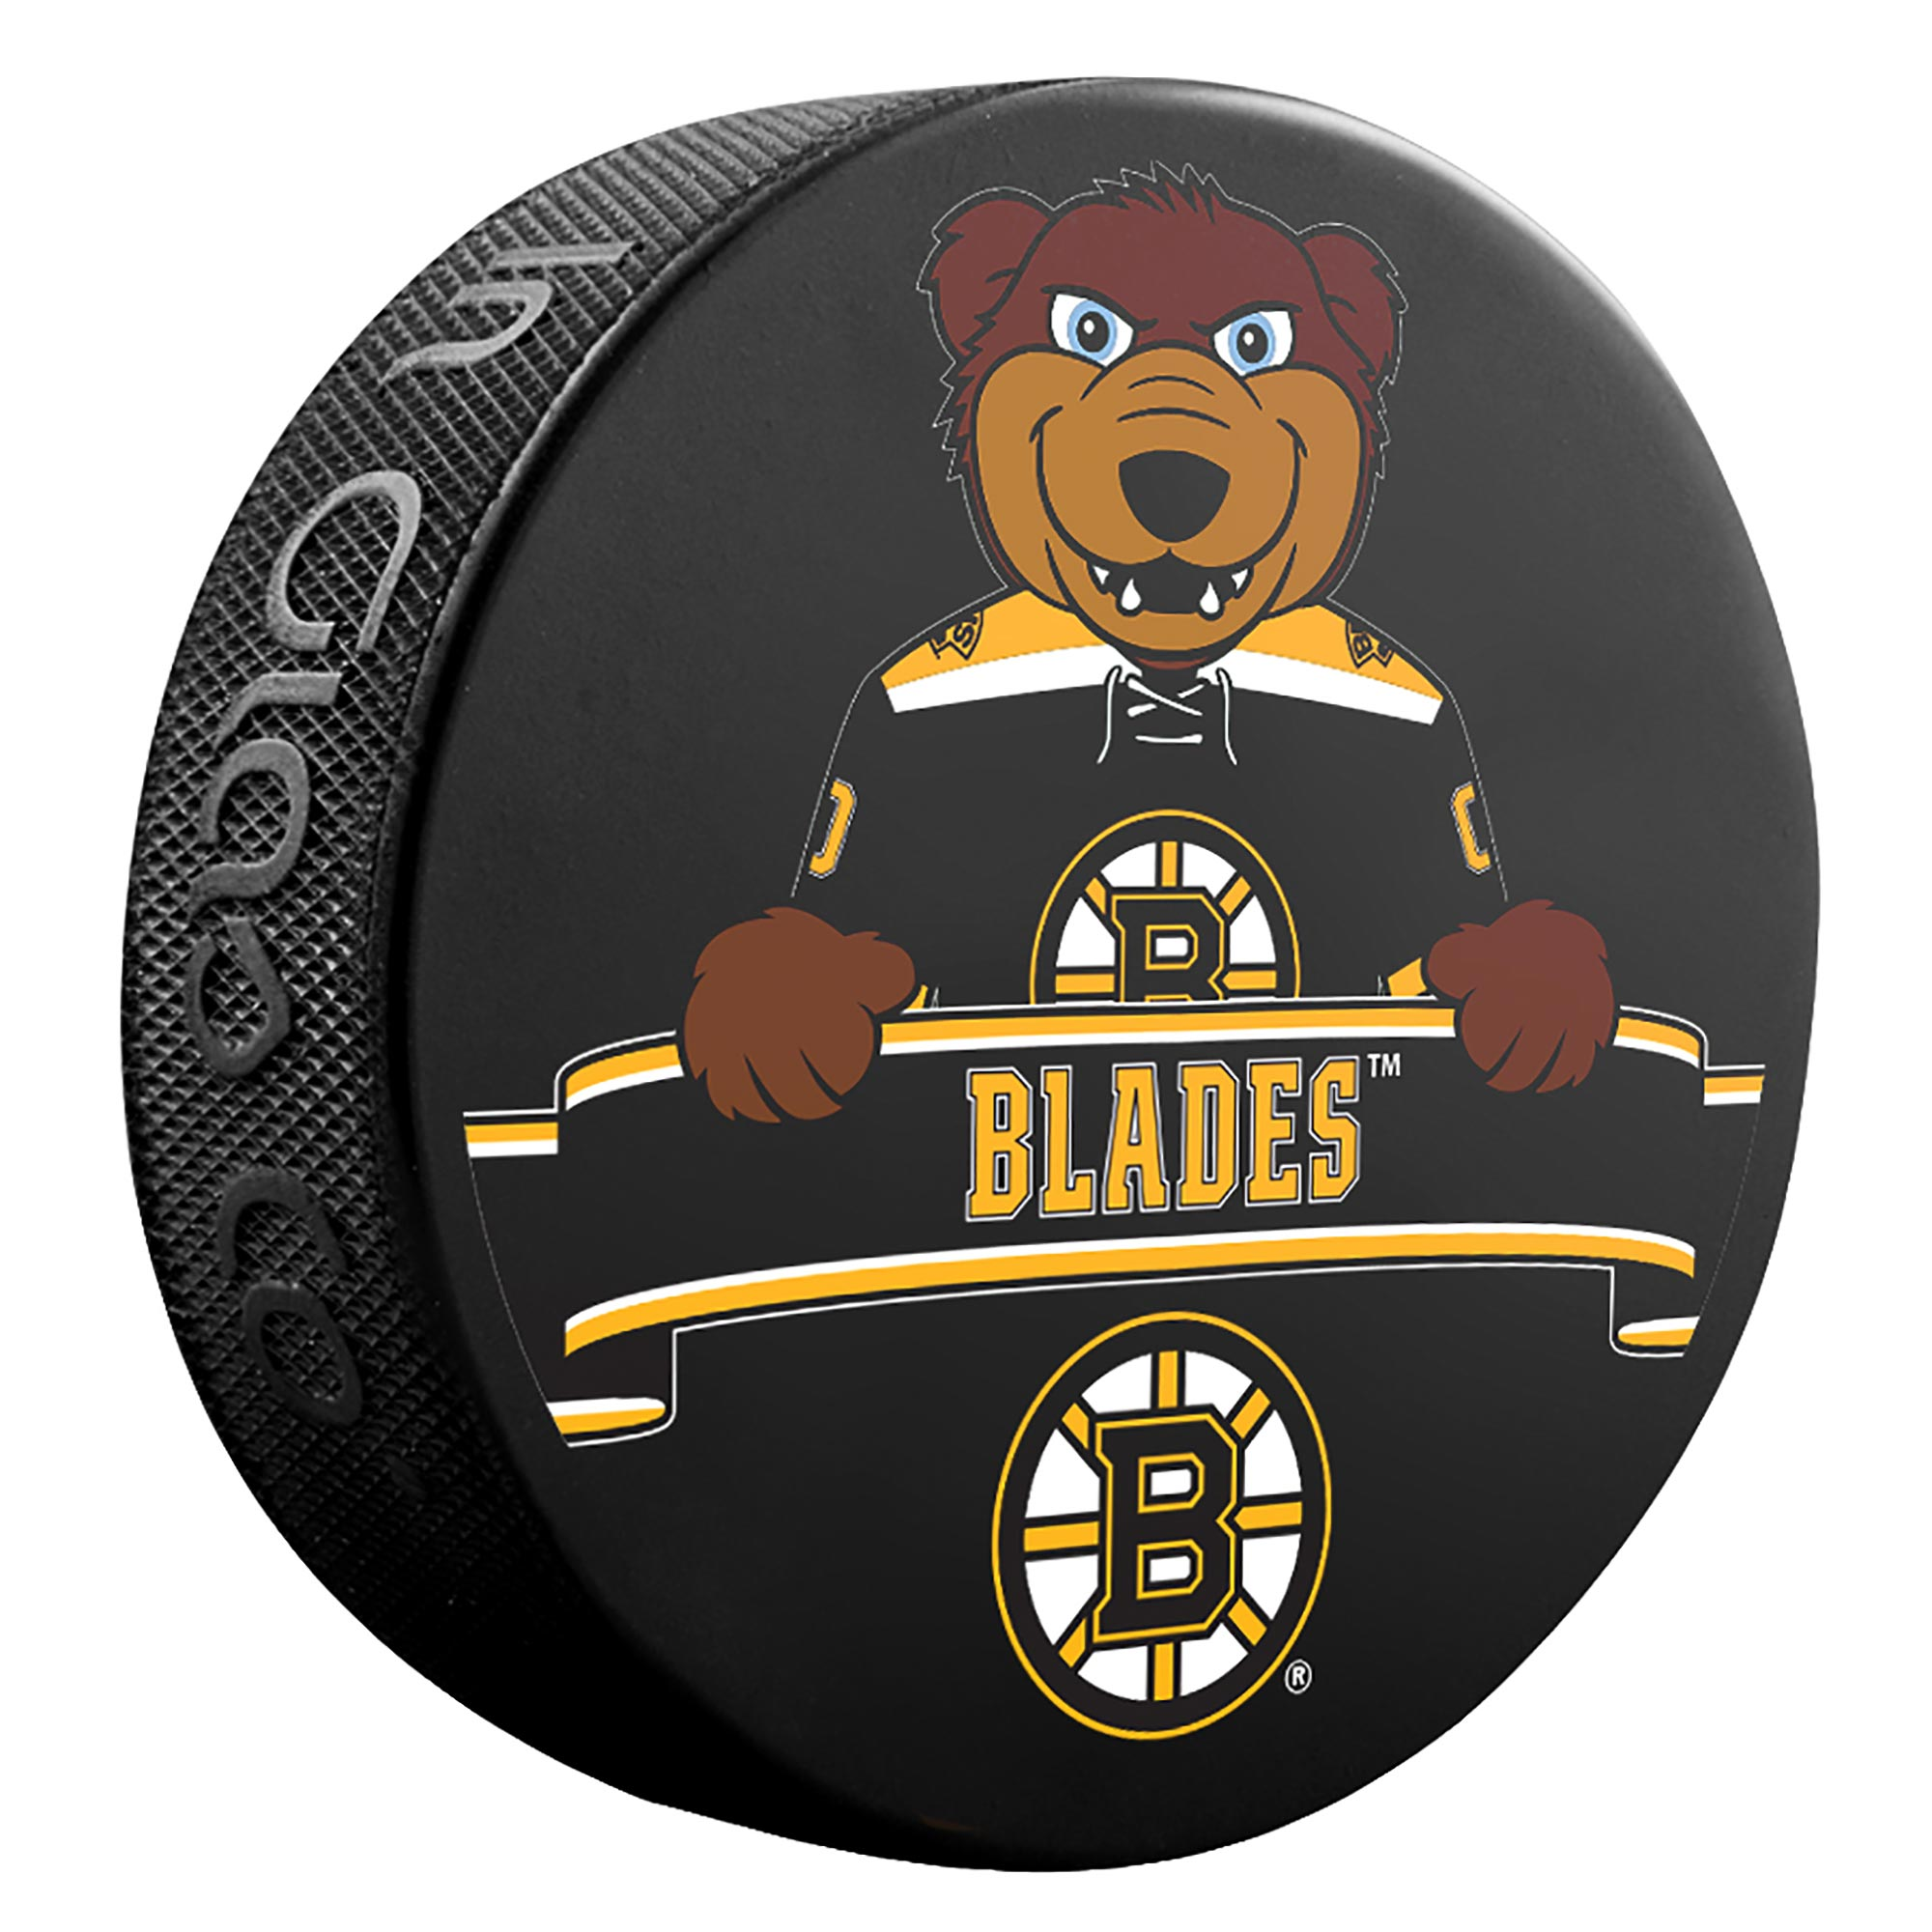 Boston Bruins Mascot Puck